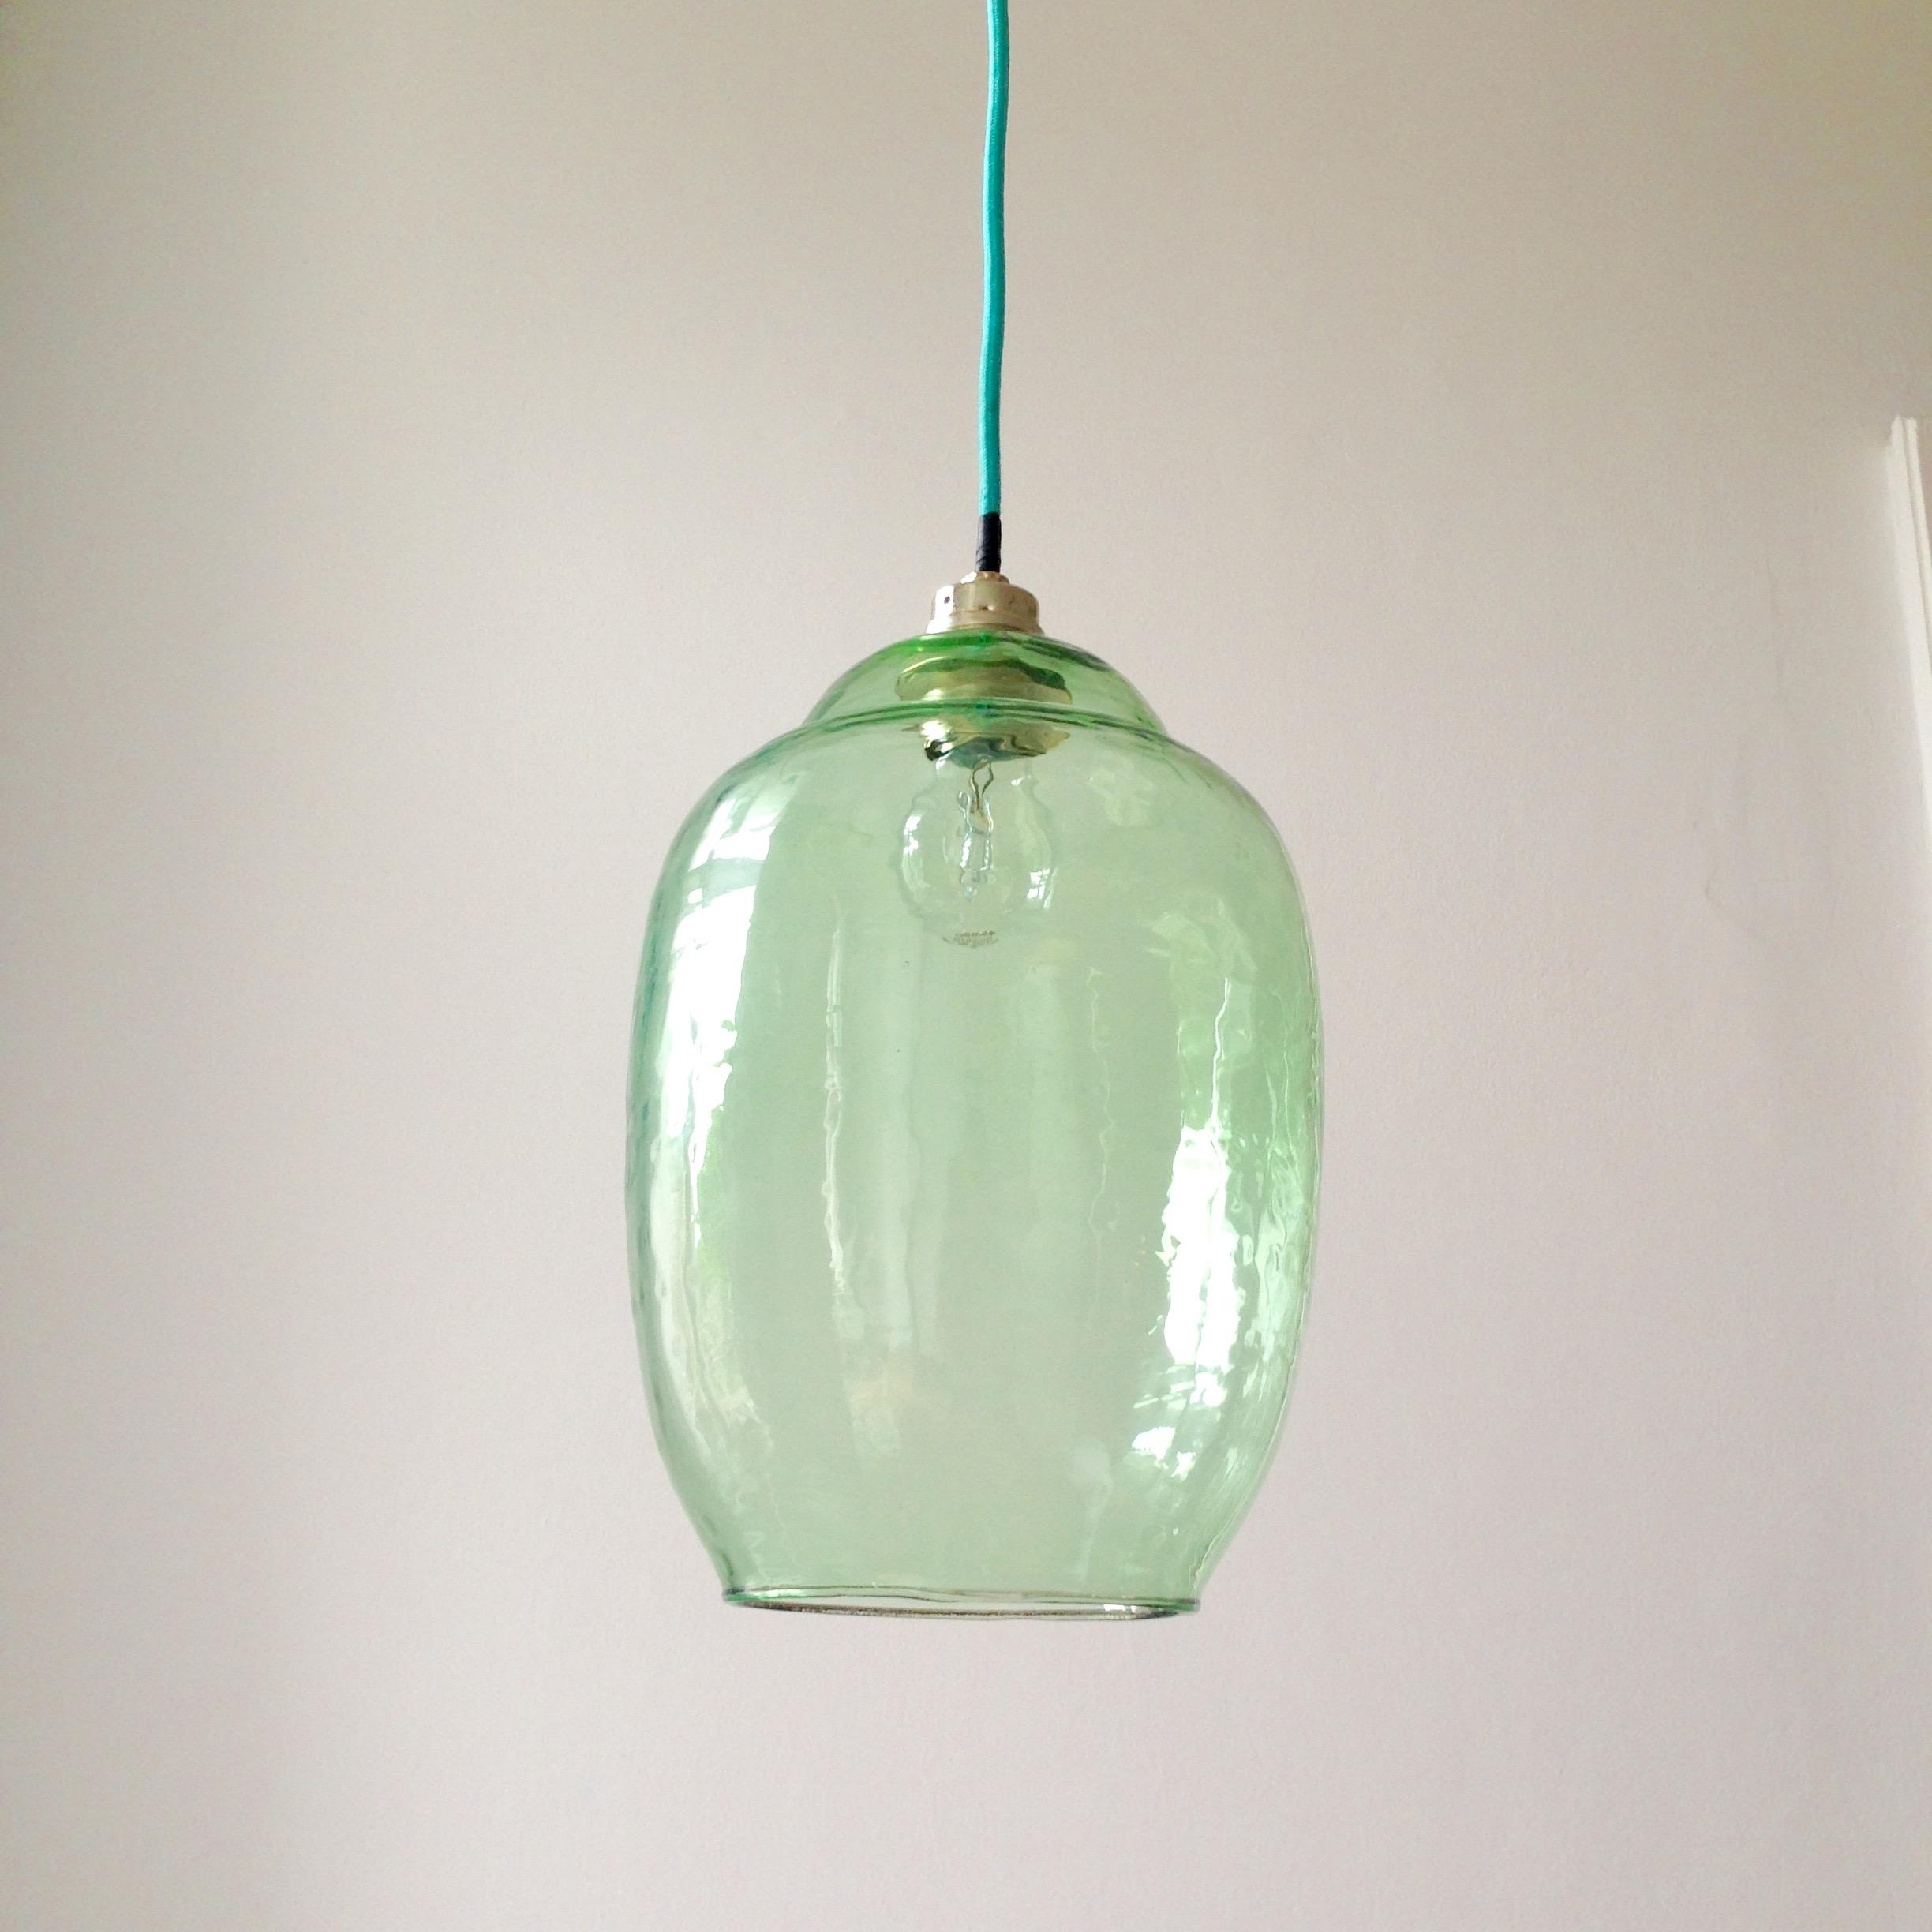 #favoritecolour #green #turquoise #lamp #glass